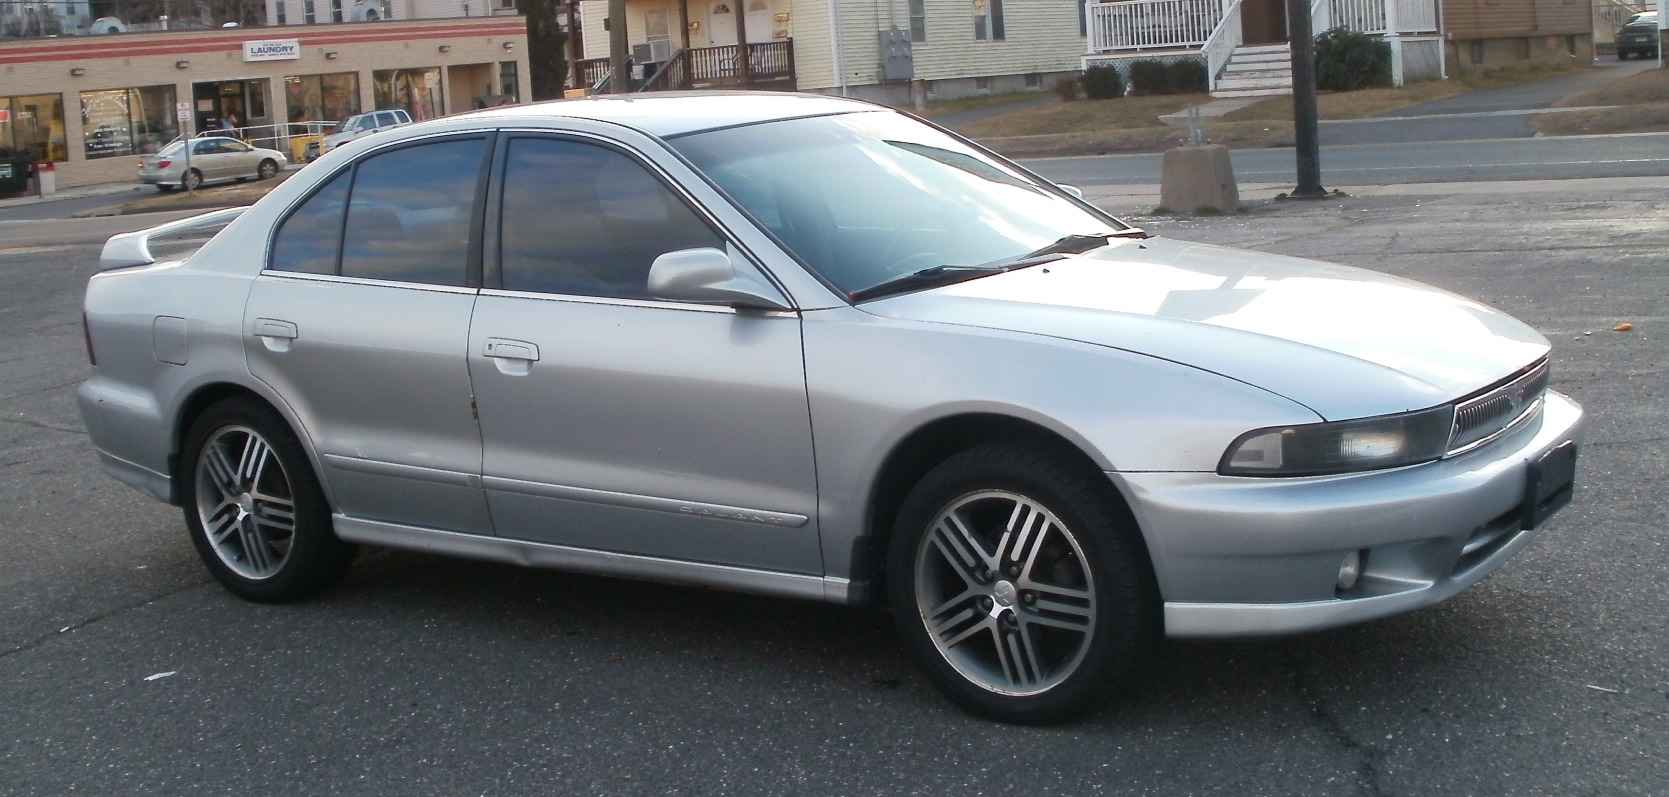 2001 Mitsubishi Galant - Information and photos - ZombieDrive